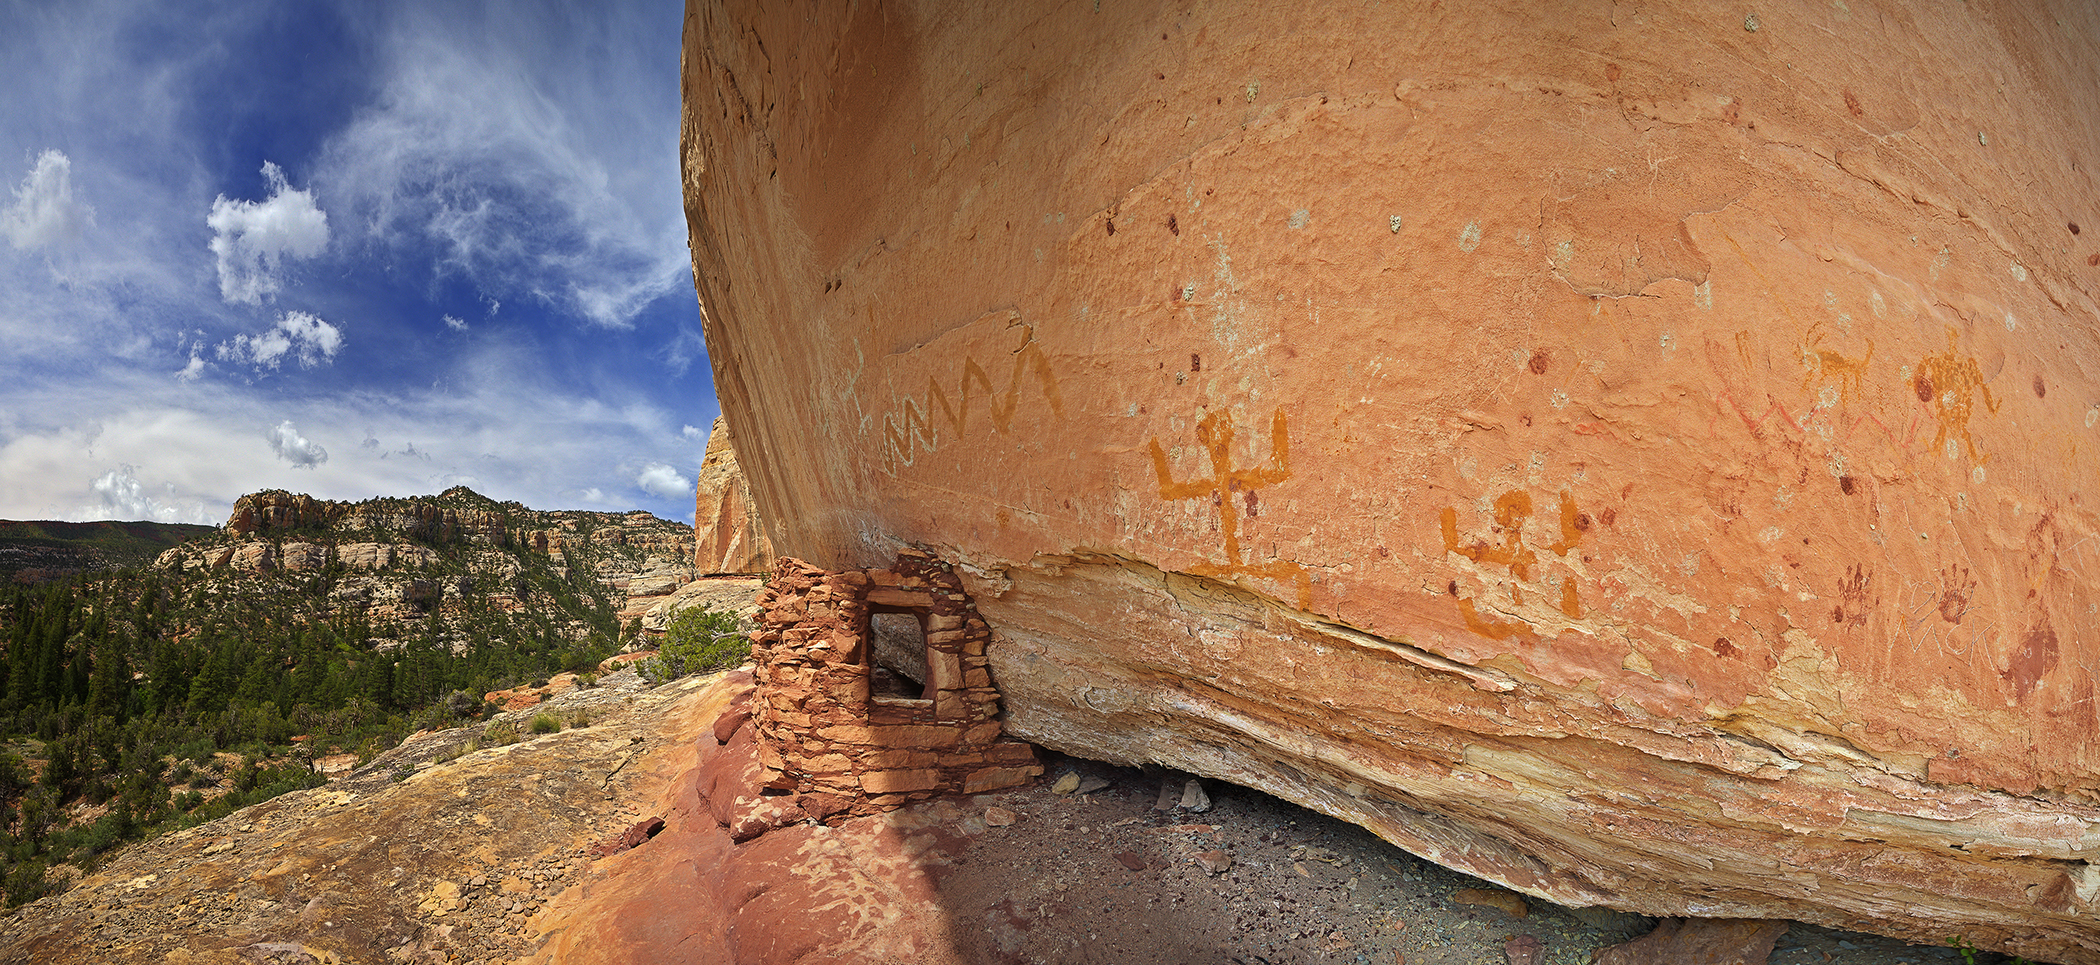 Bears Ears granary and rock art